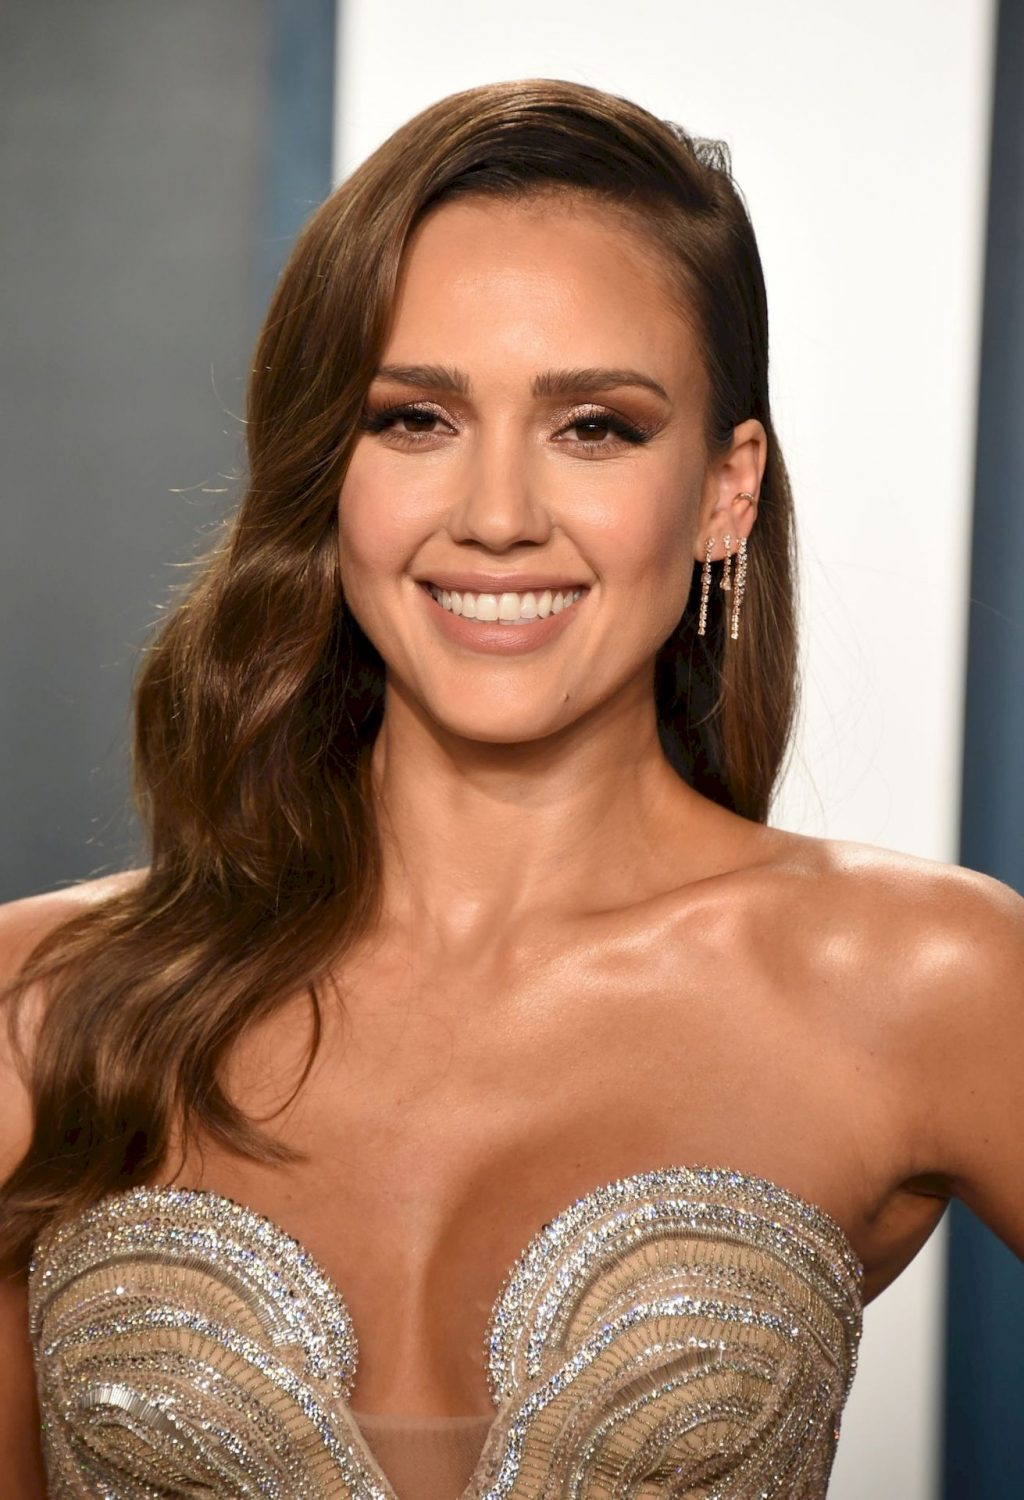 Jessica Alba Wows at the 2020 Vanity Fair Oscar Party (122 Photos)